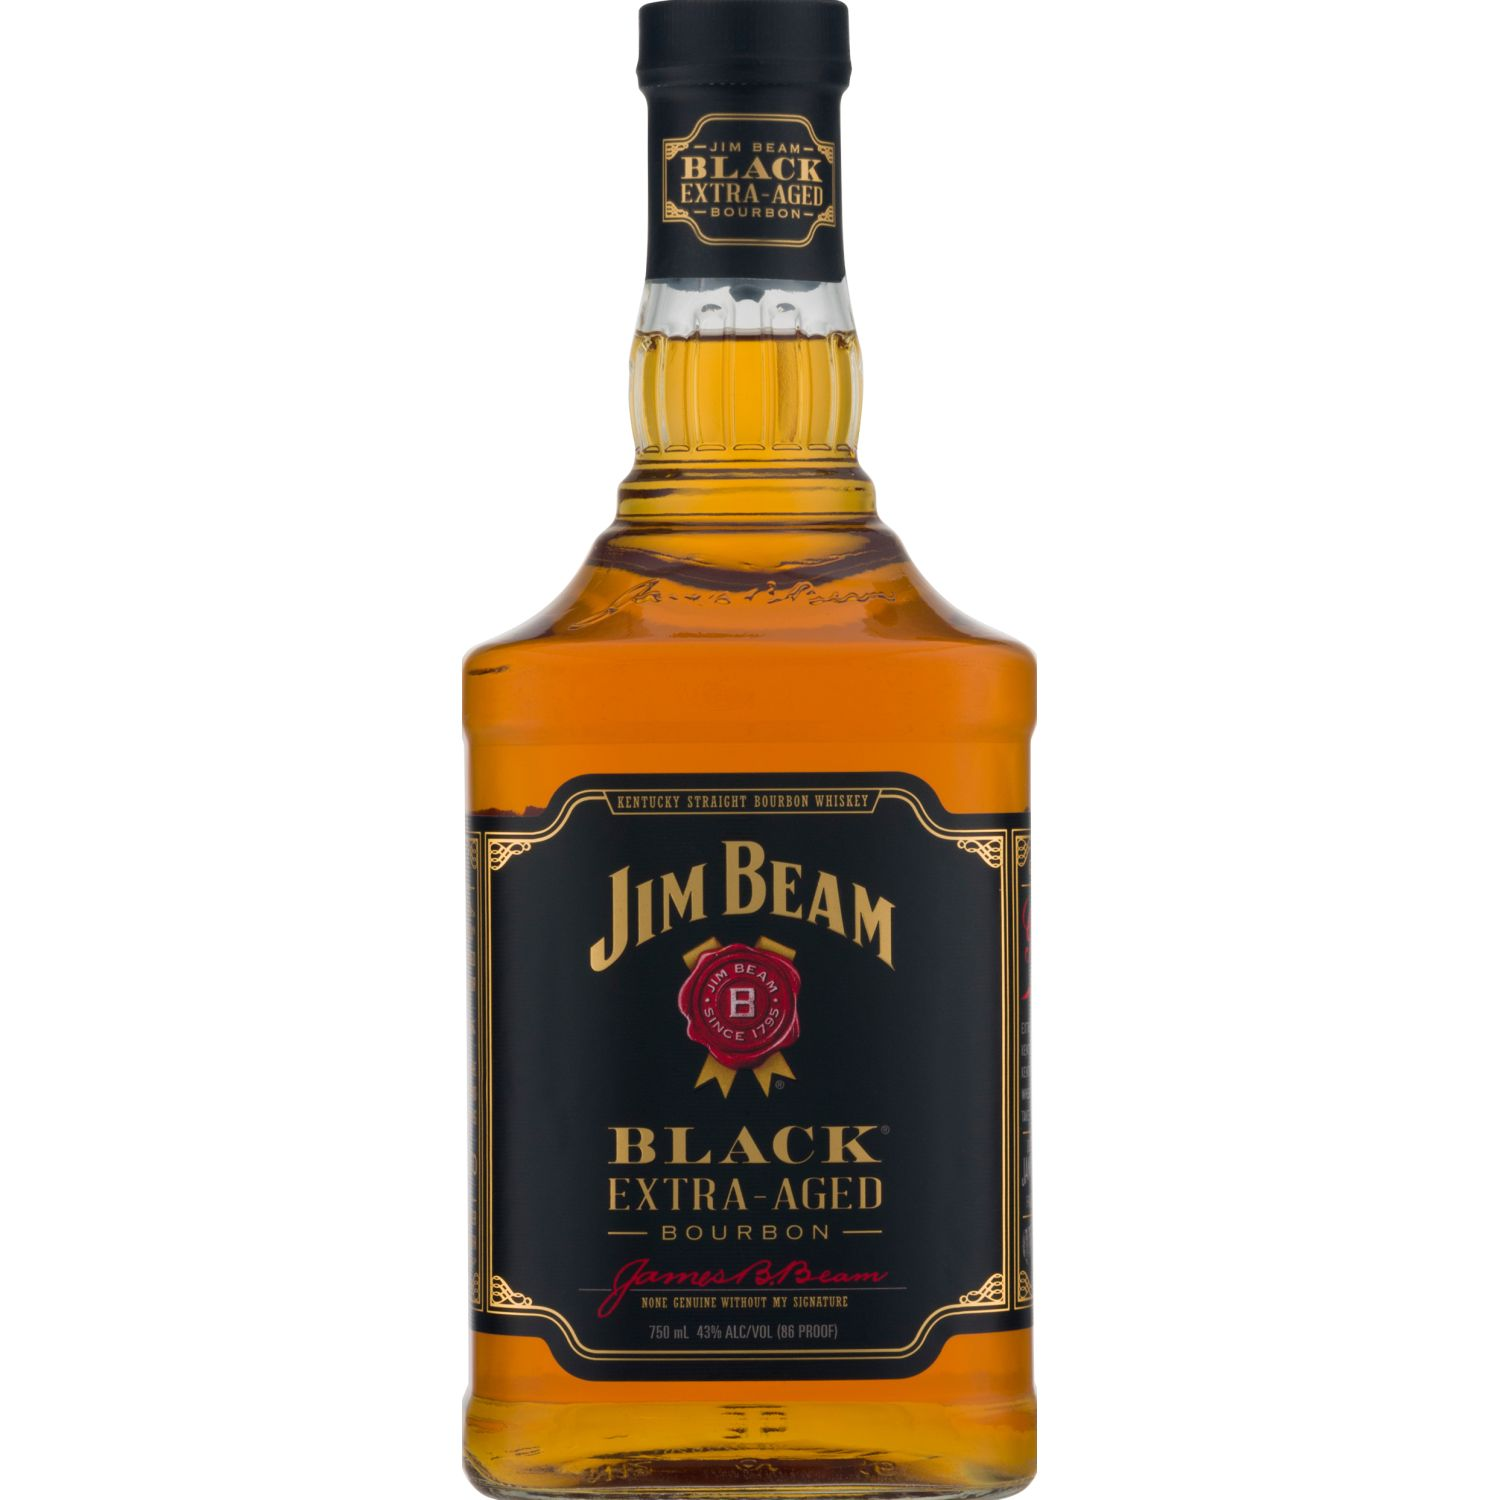 JIM BEAM WHISKY JIM BEAM BLACK EXT AGED X 750ML Blanco Whisky y escocés